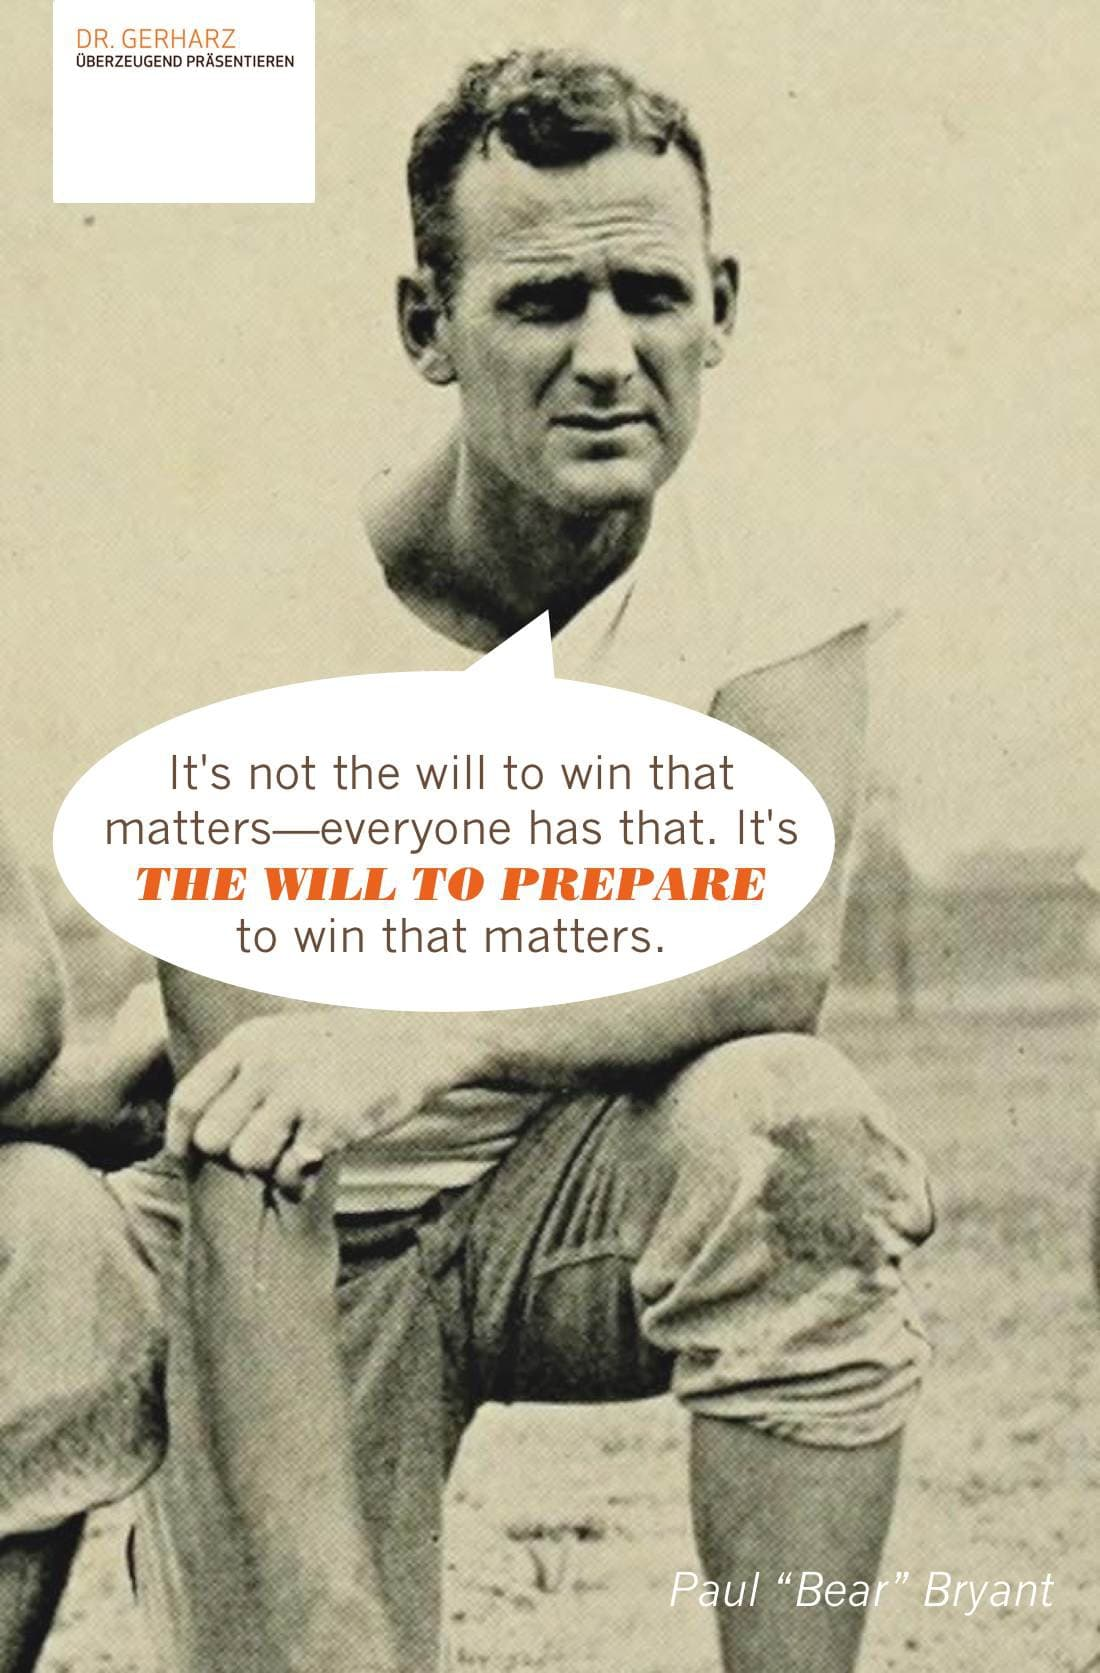 """""""It's not the will to win that matters—everyone has that. It's THE WILL TO PREPARE to win that matters."""" - Paul """"Bear"""" Bryant"""